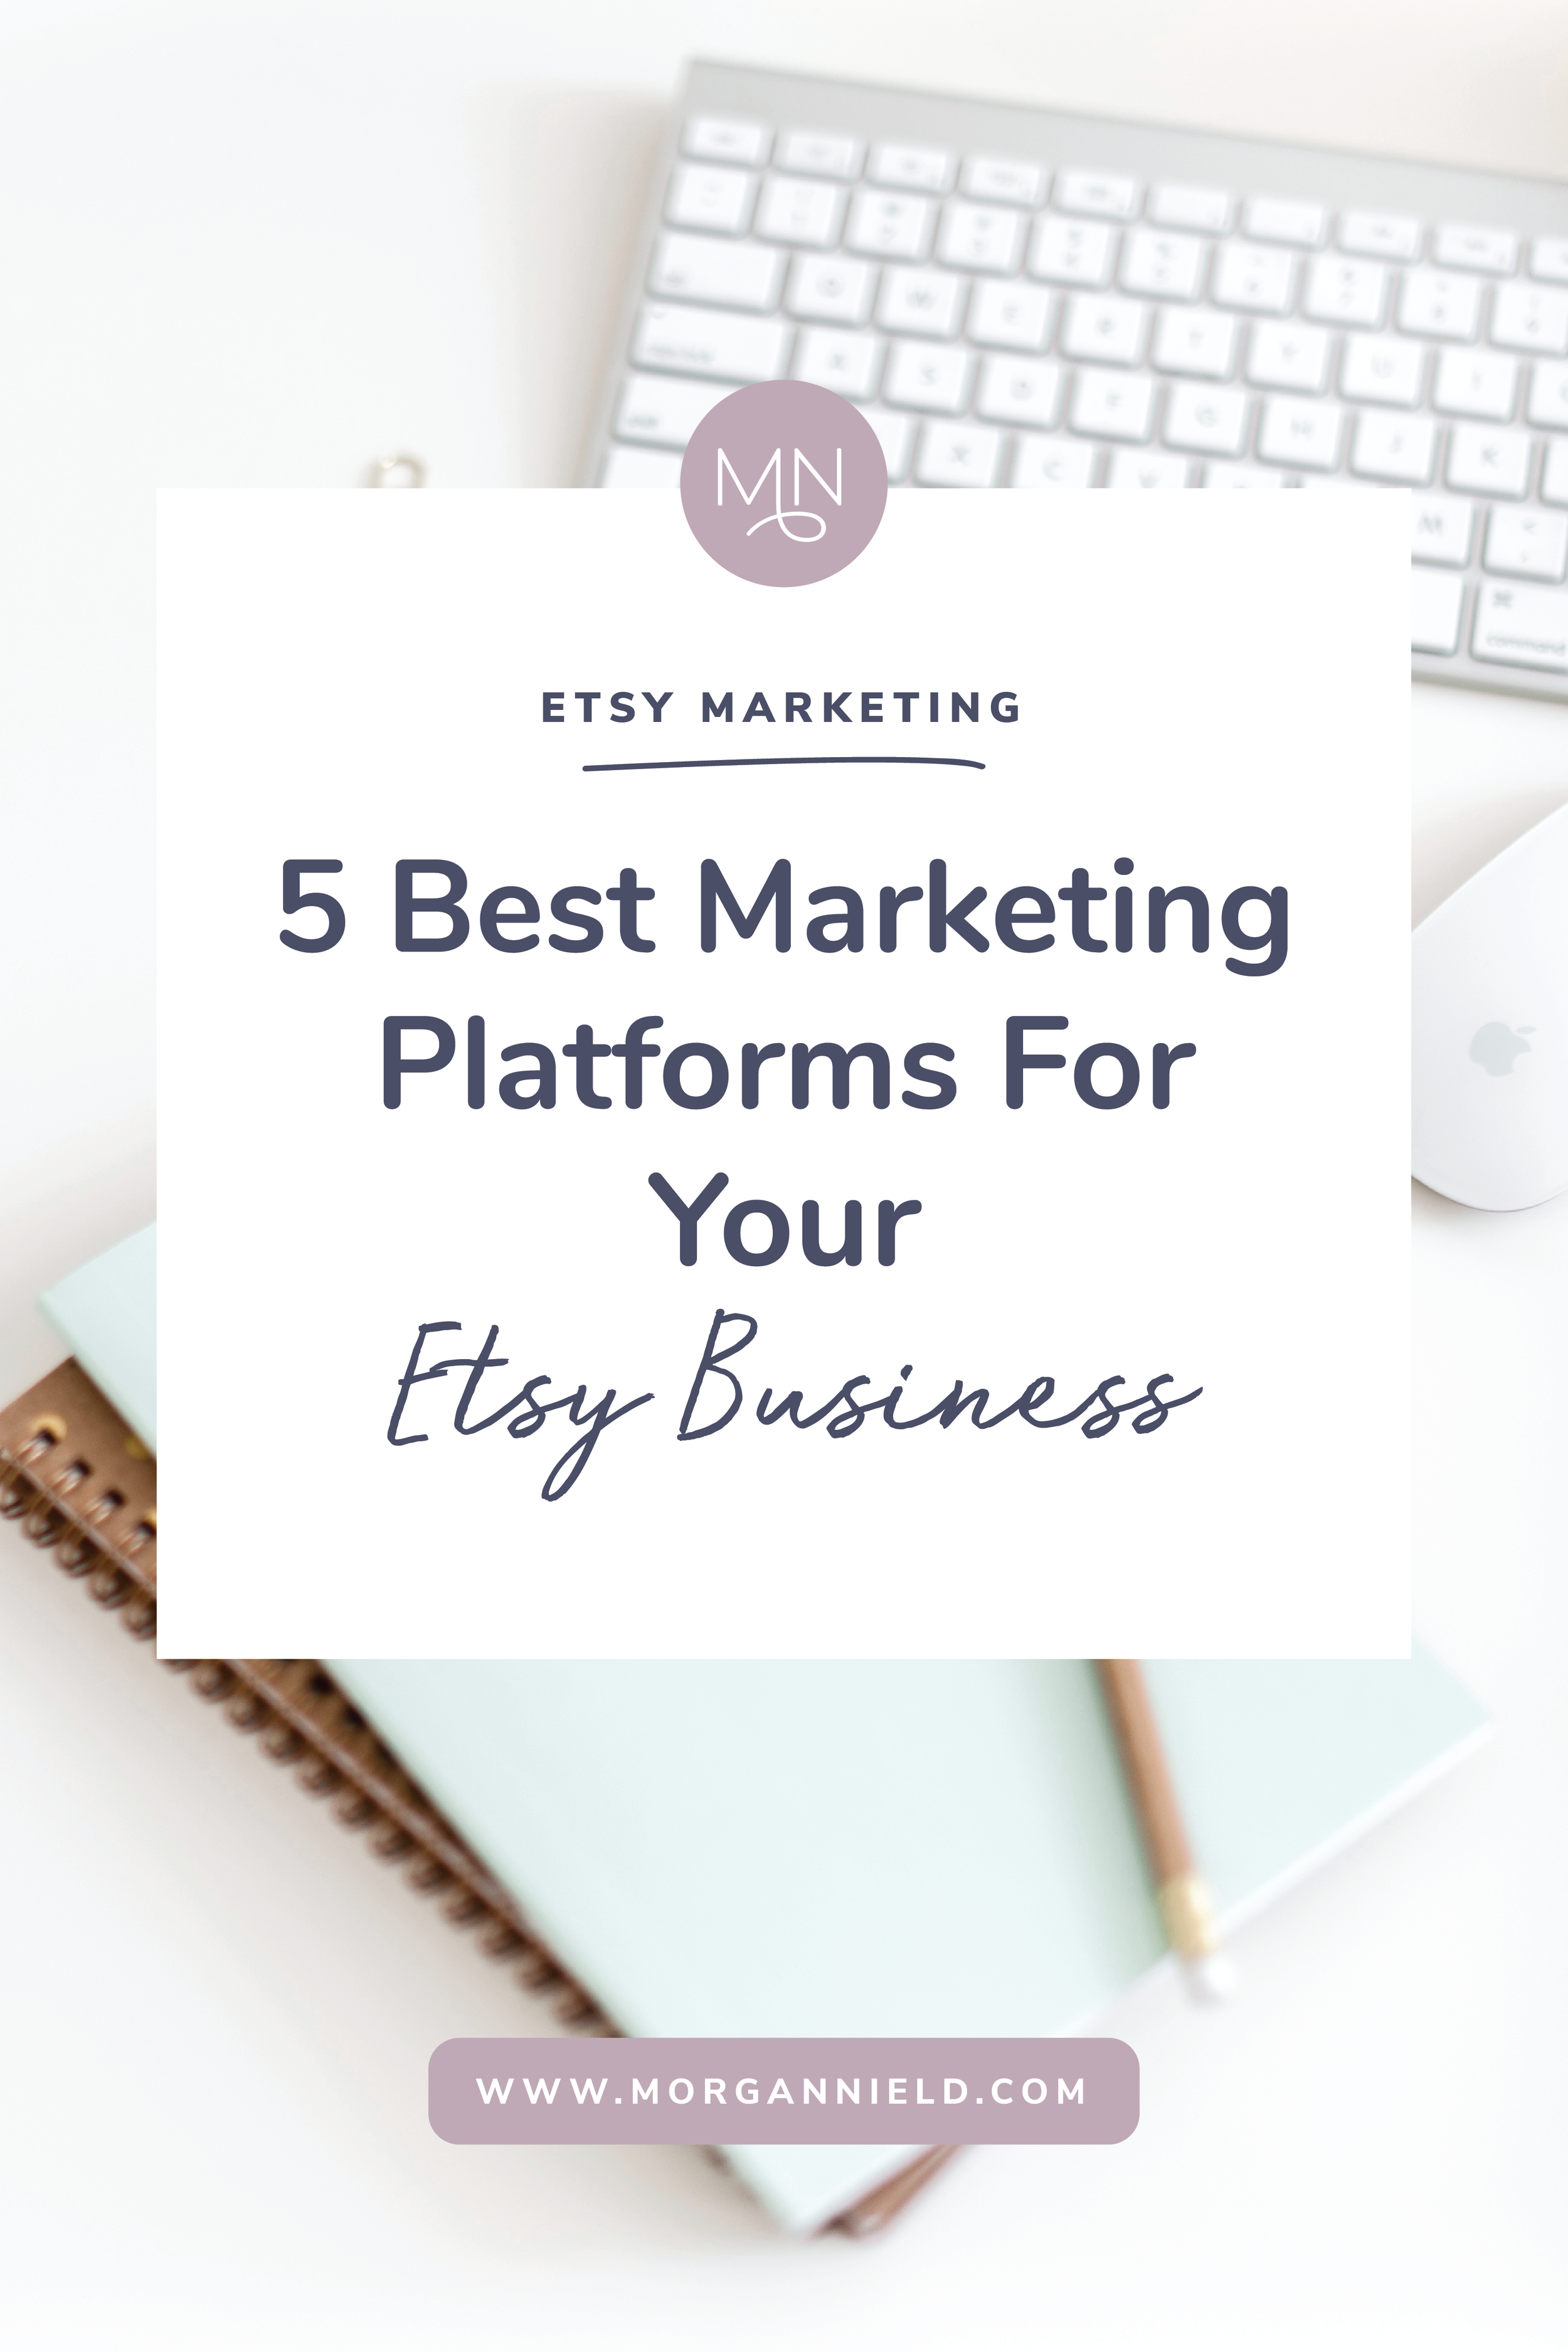 Driving traffic to your Etsy shop is one of the hardest parts of running a successful small business. Today I'm diving into the top 5 platforms you should be utilizing consistently to drive MAJOR traffic to your Etsy shop and start earning consistent sales... >>